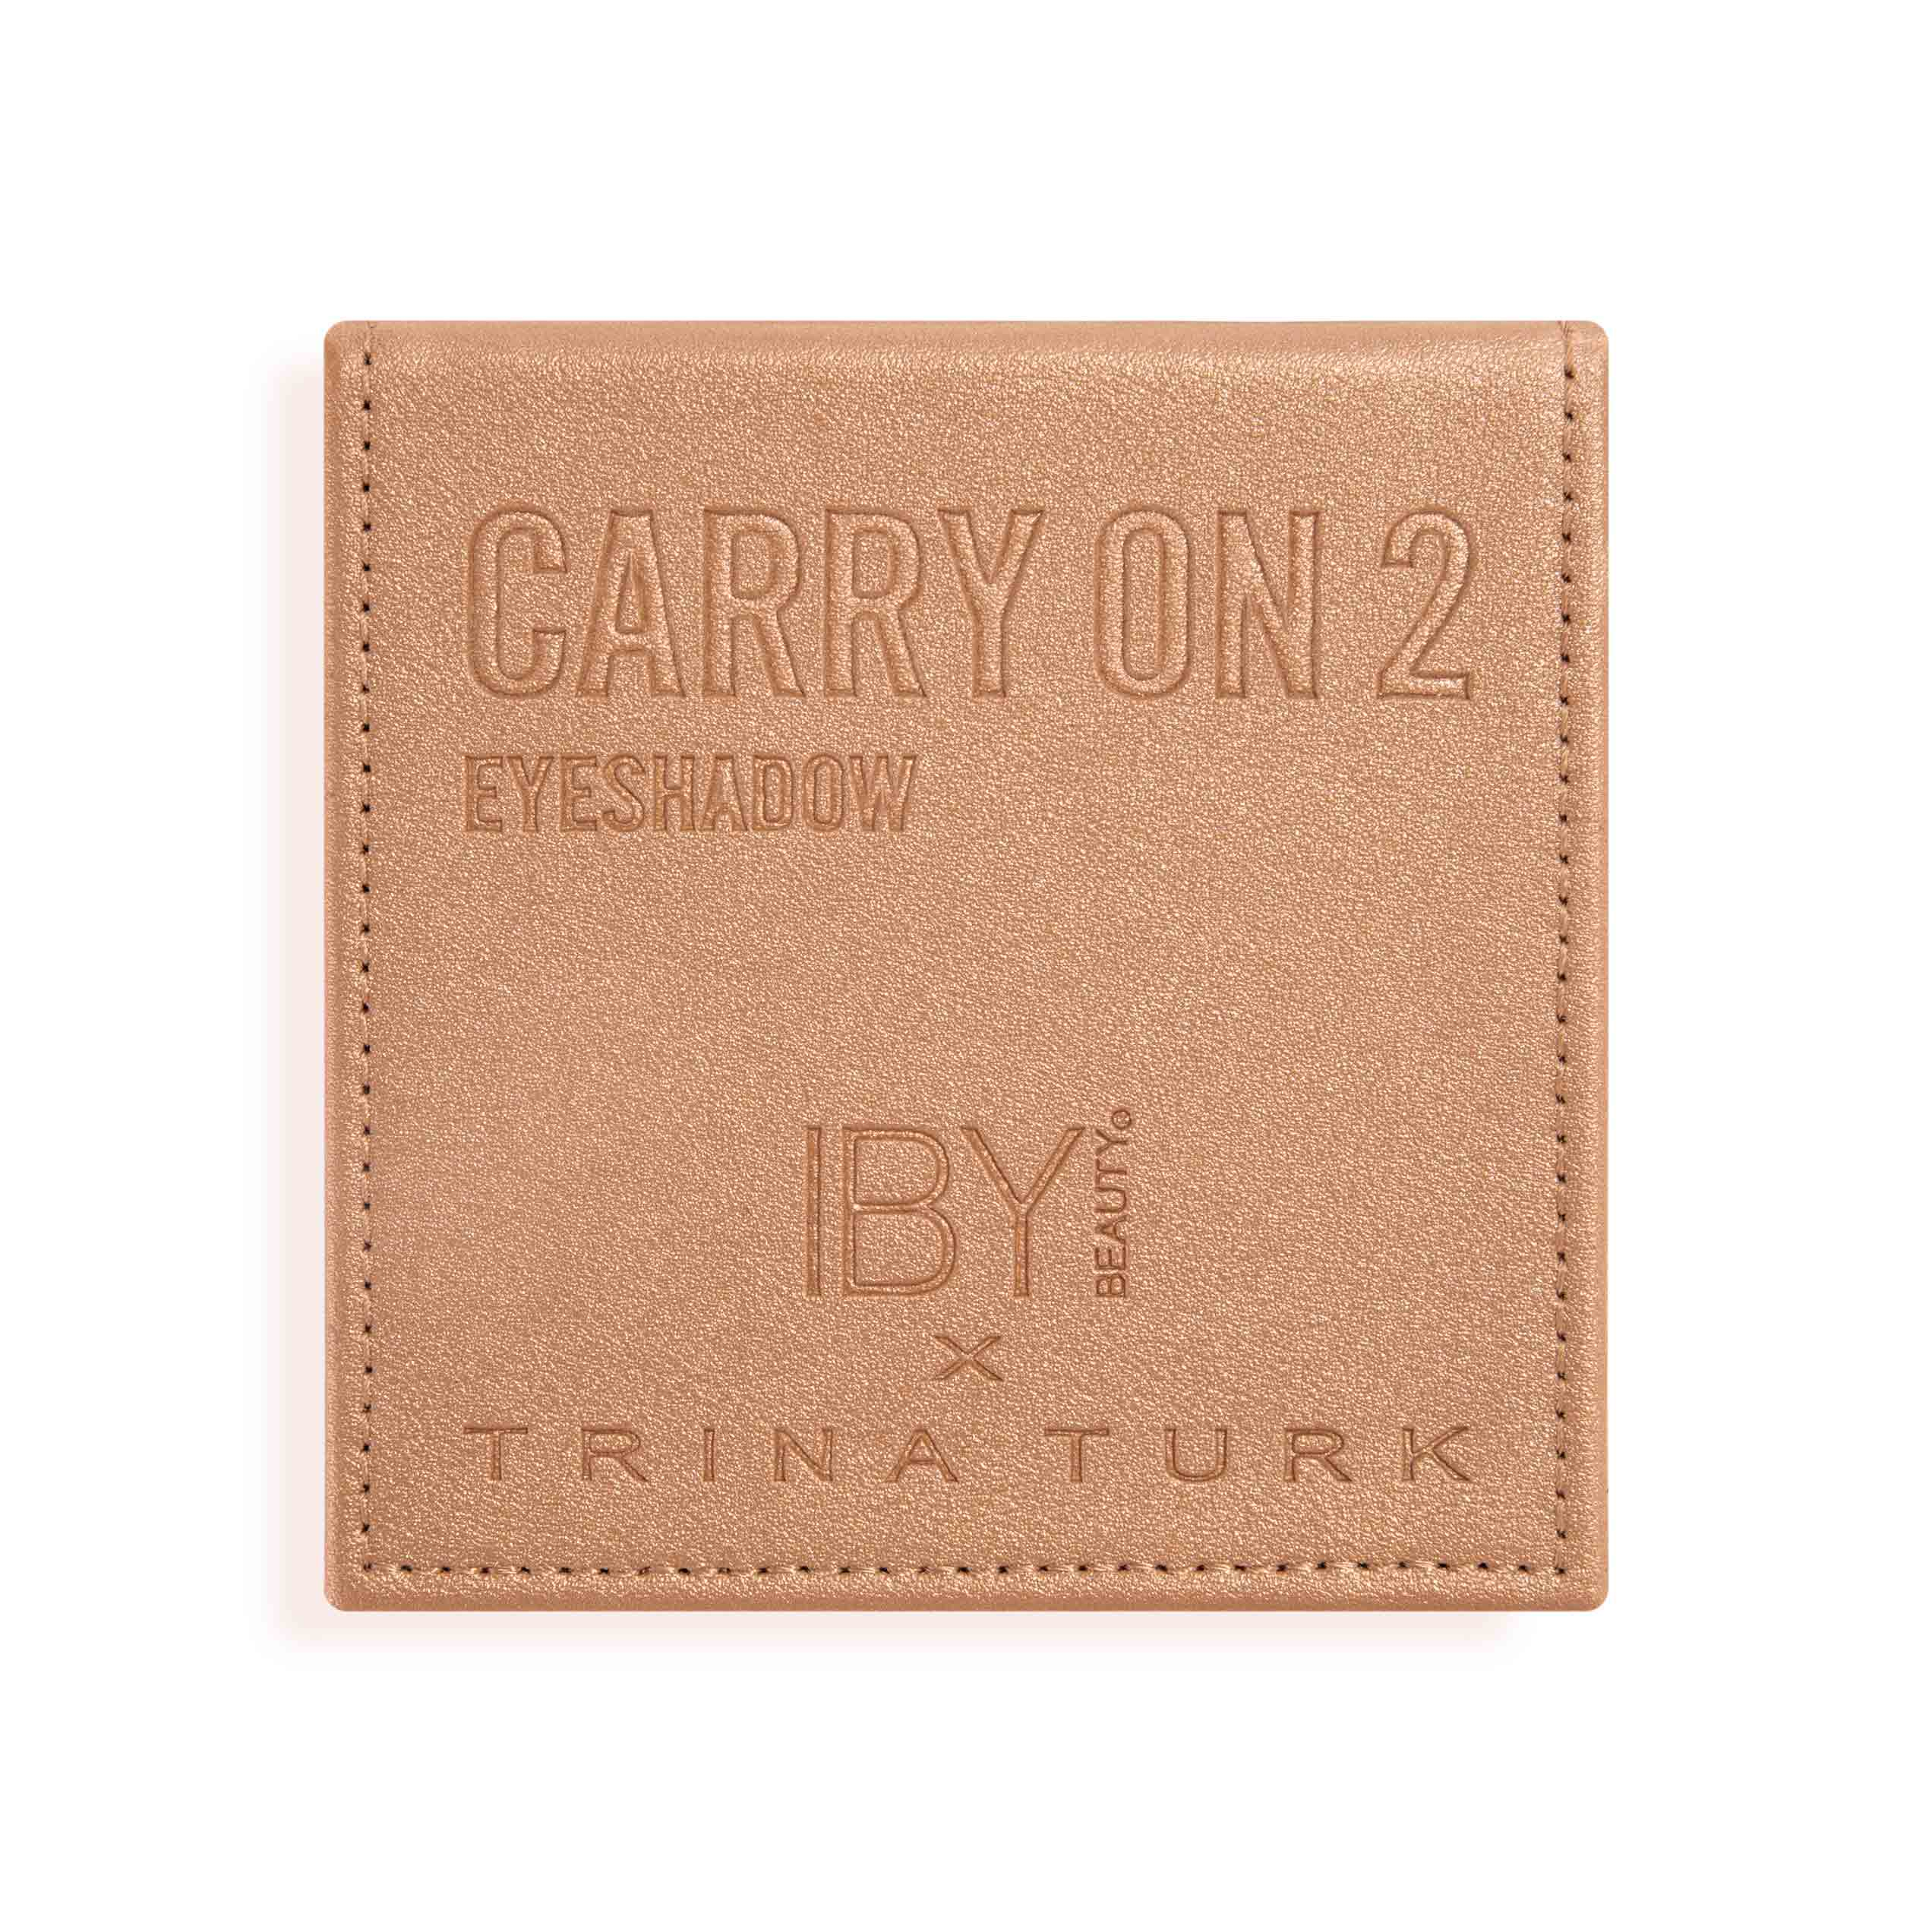 IBY x Trina Turk Carry On 2 Palette